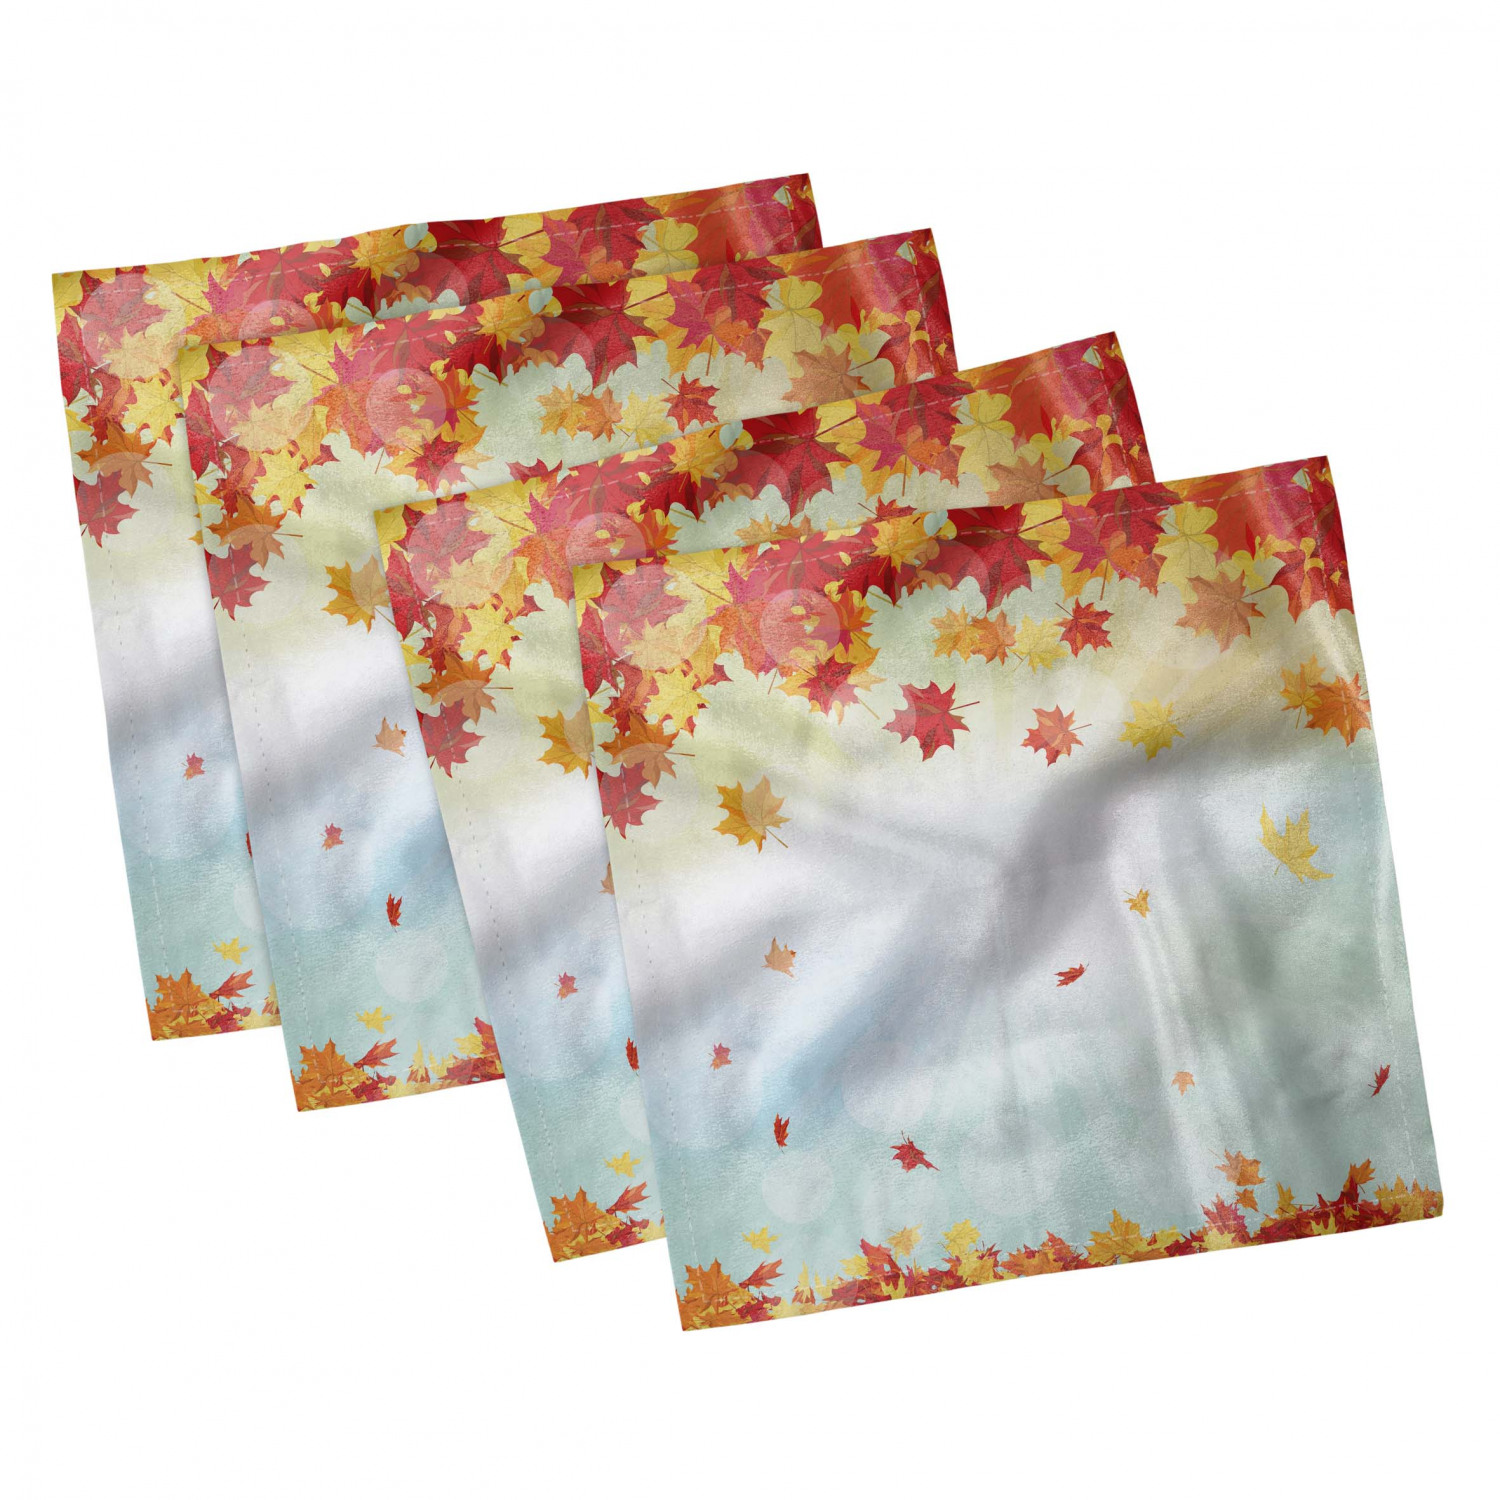 thumbnail 47 - Ambesonne-Autumn-Fall-Decorative-Satin-Napkins-Set-of-4-Party-Dinner-Fabric